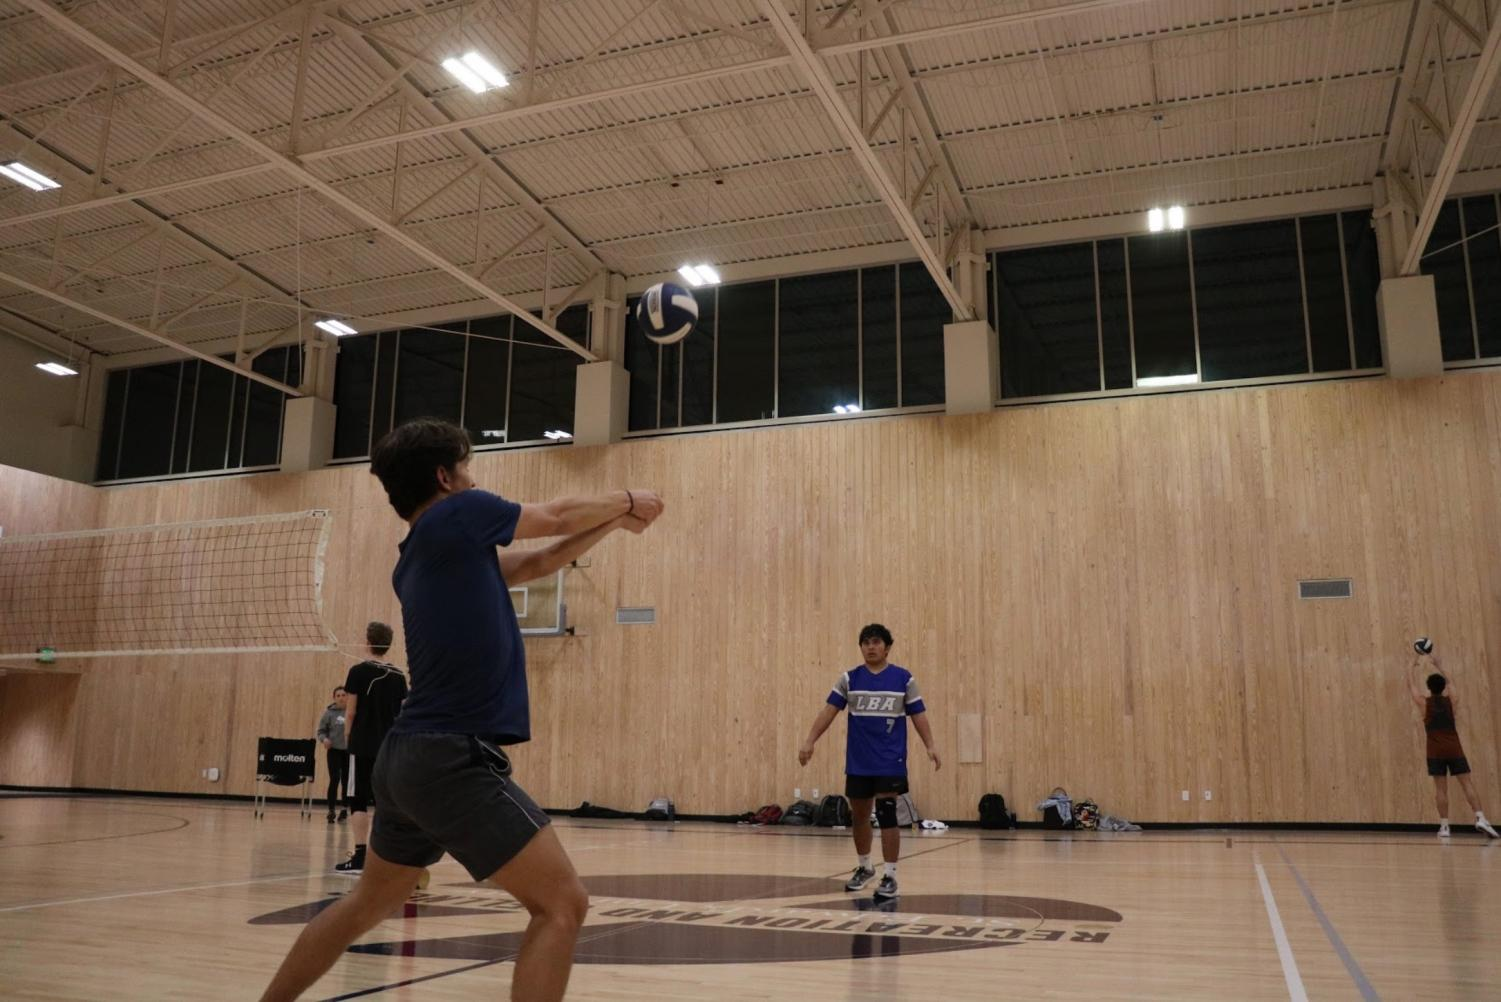 St. Edward's student Rory O'Connor bumps volleyball to his warmup partner during a weekly practice. The club team practices Monday and Wednesday evenings.